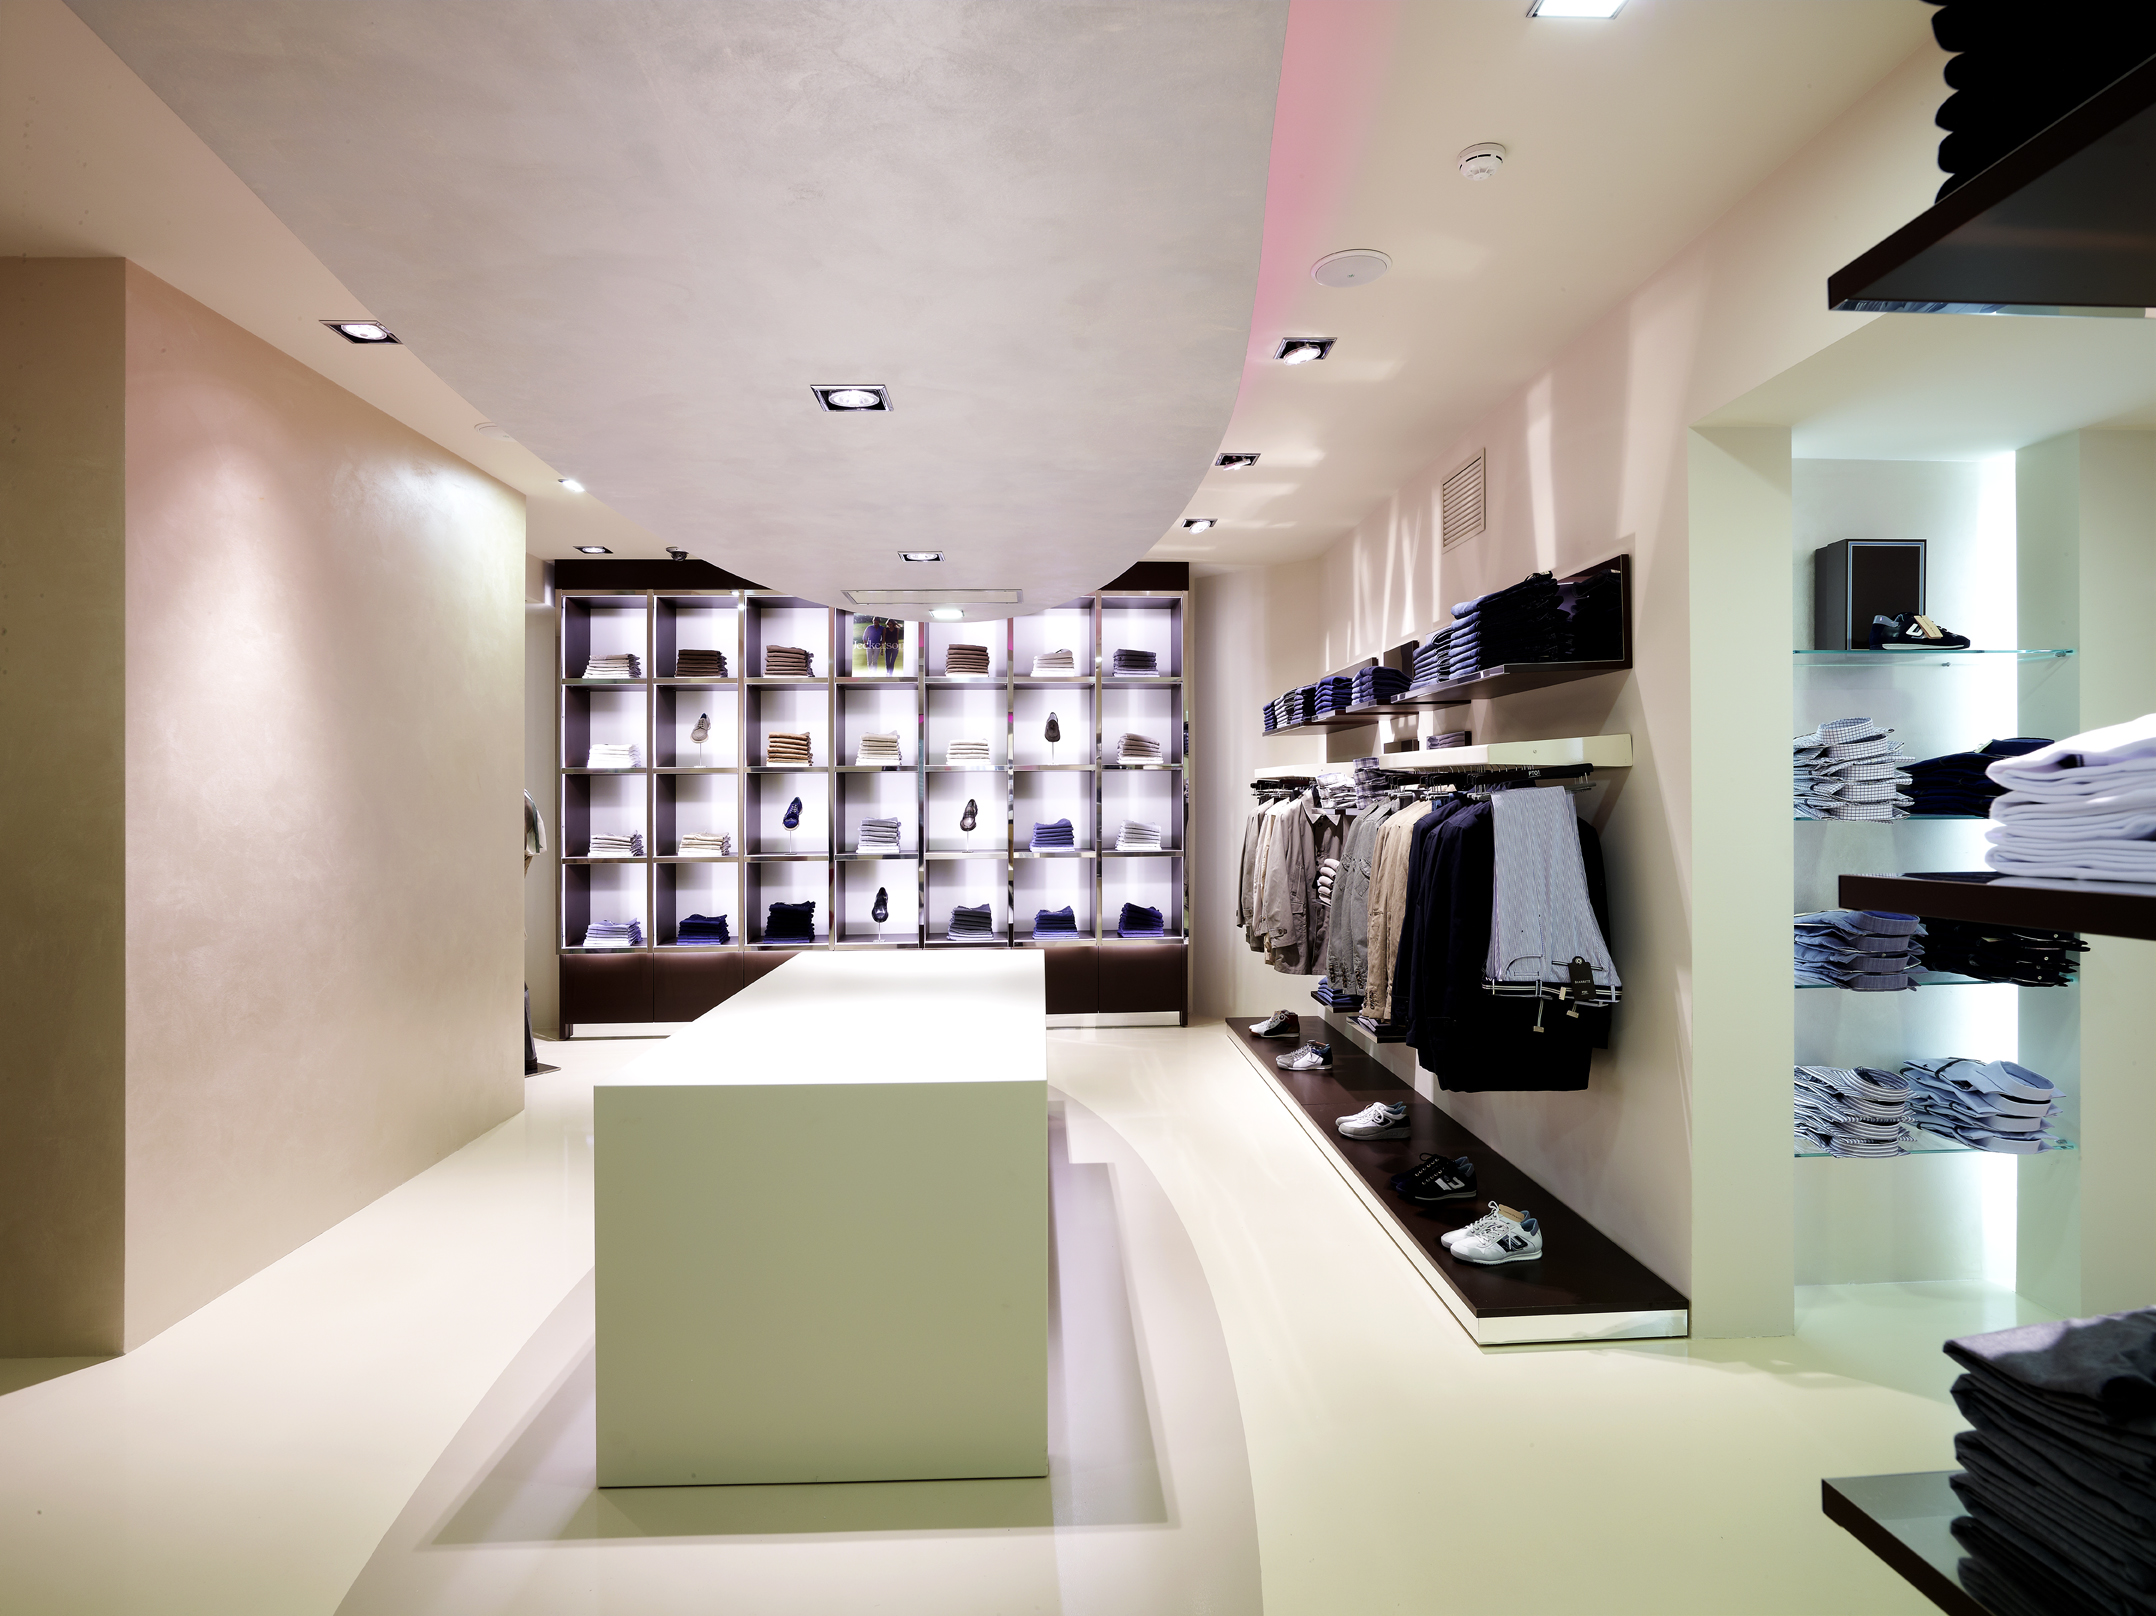 Clothing Store Interior Design Includes Brand Identity Of The Store